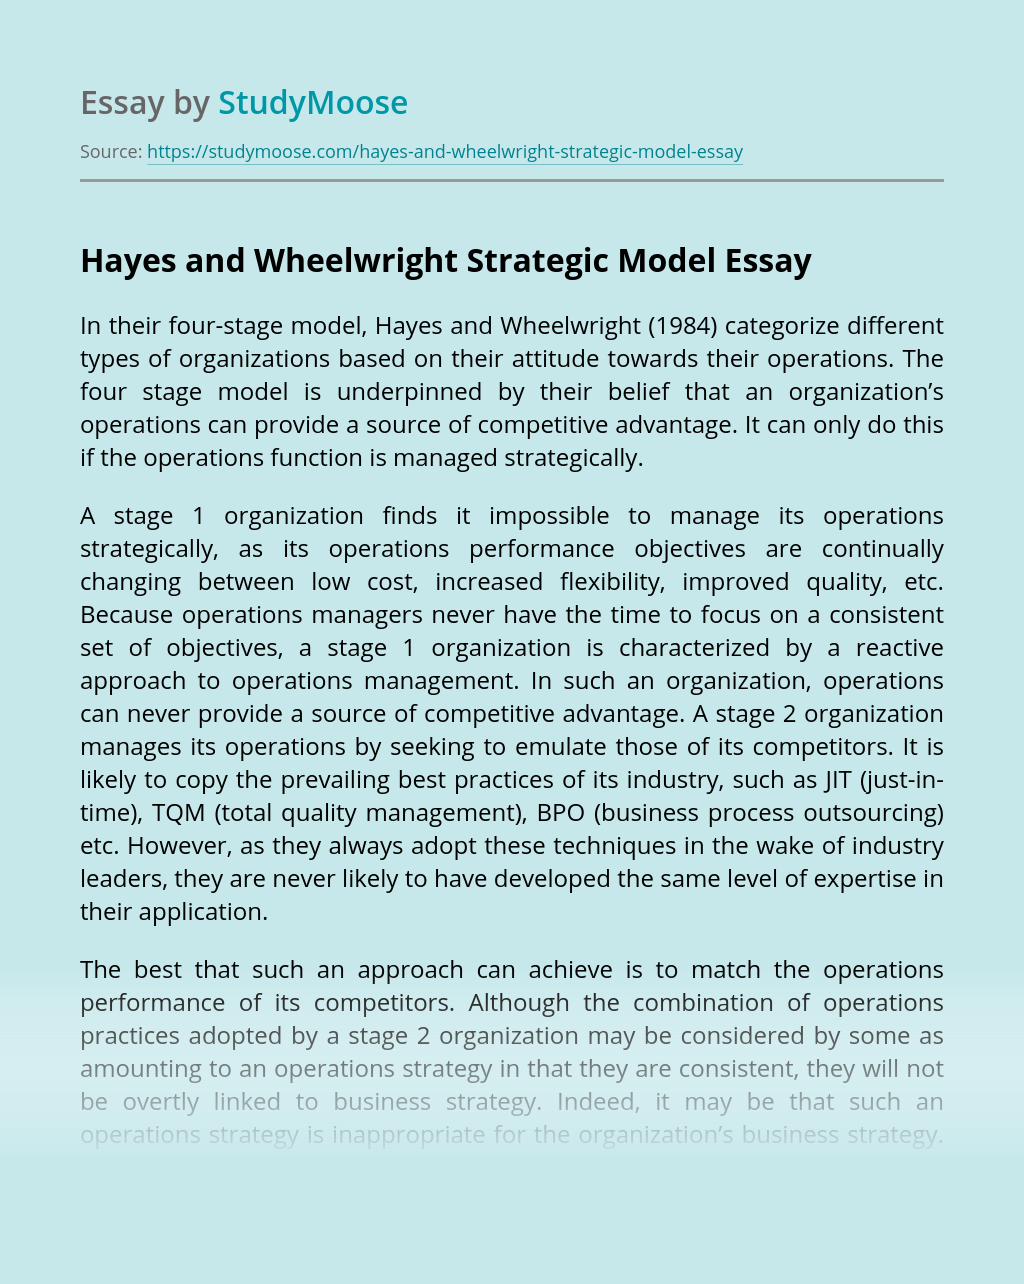 The four stage model of Hayes and Wheelwright